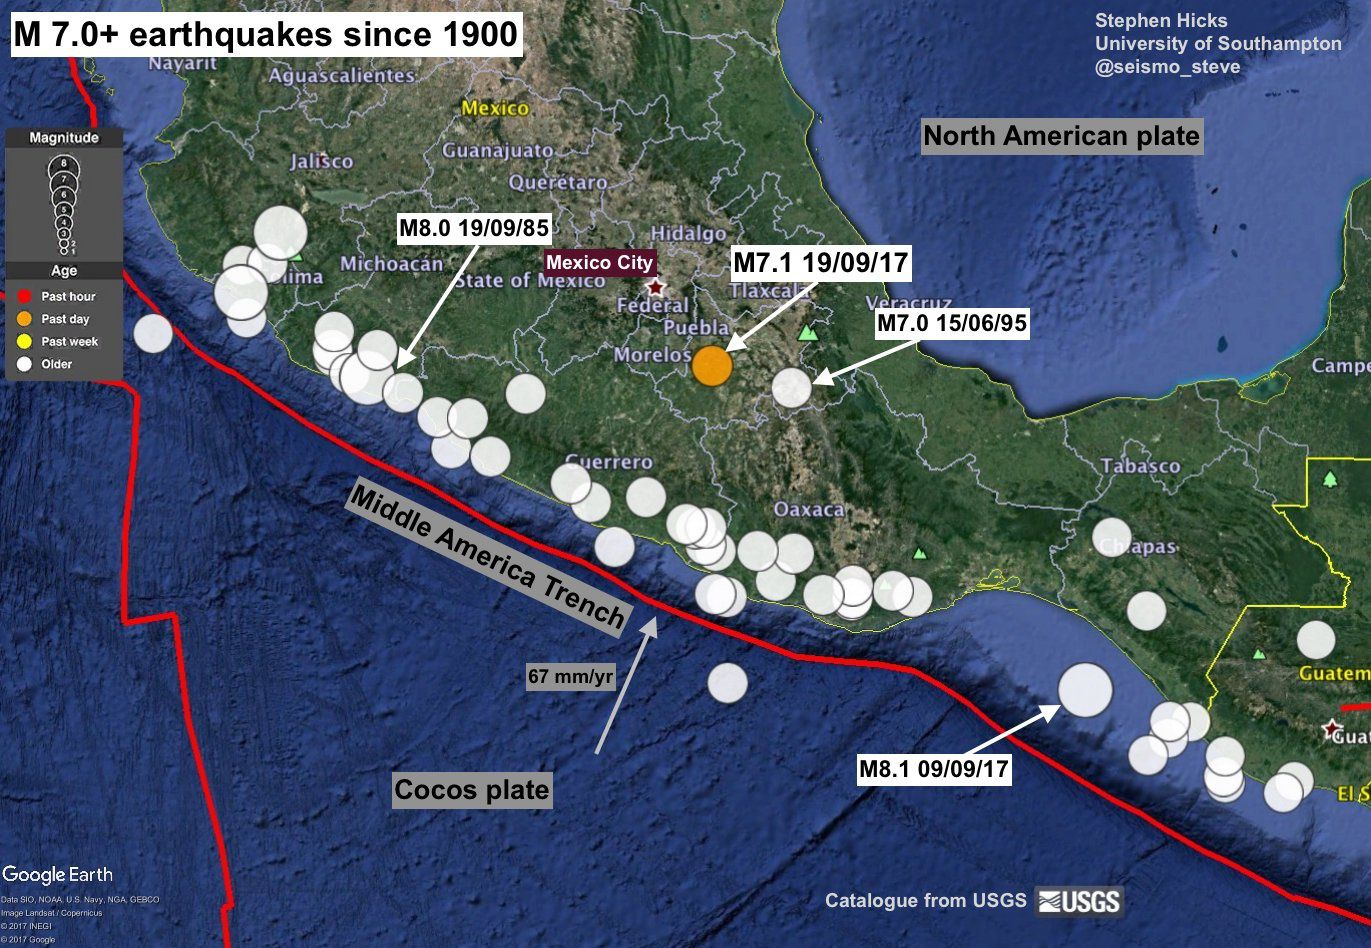 Mexico - main magnitude 7.0+ earthquakes since 1900, and limits of tectonic plates - doc. USGS